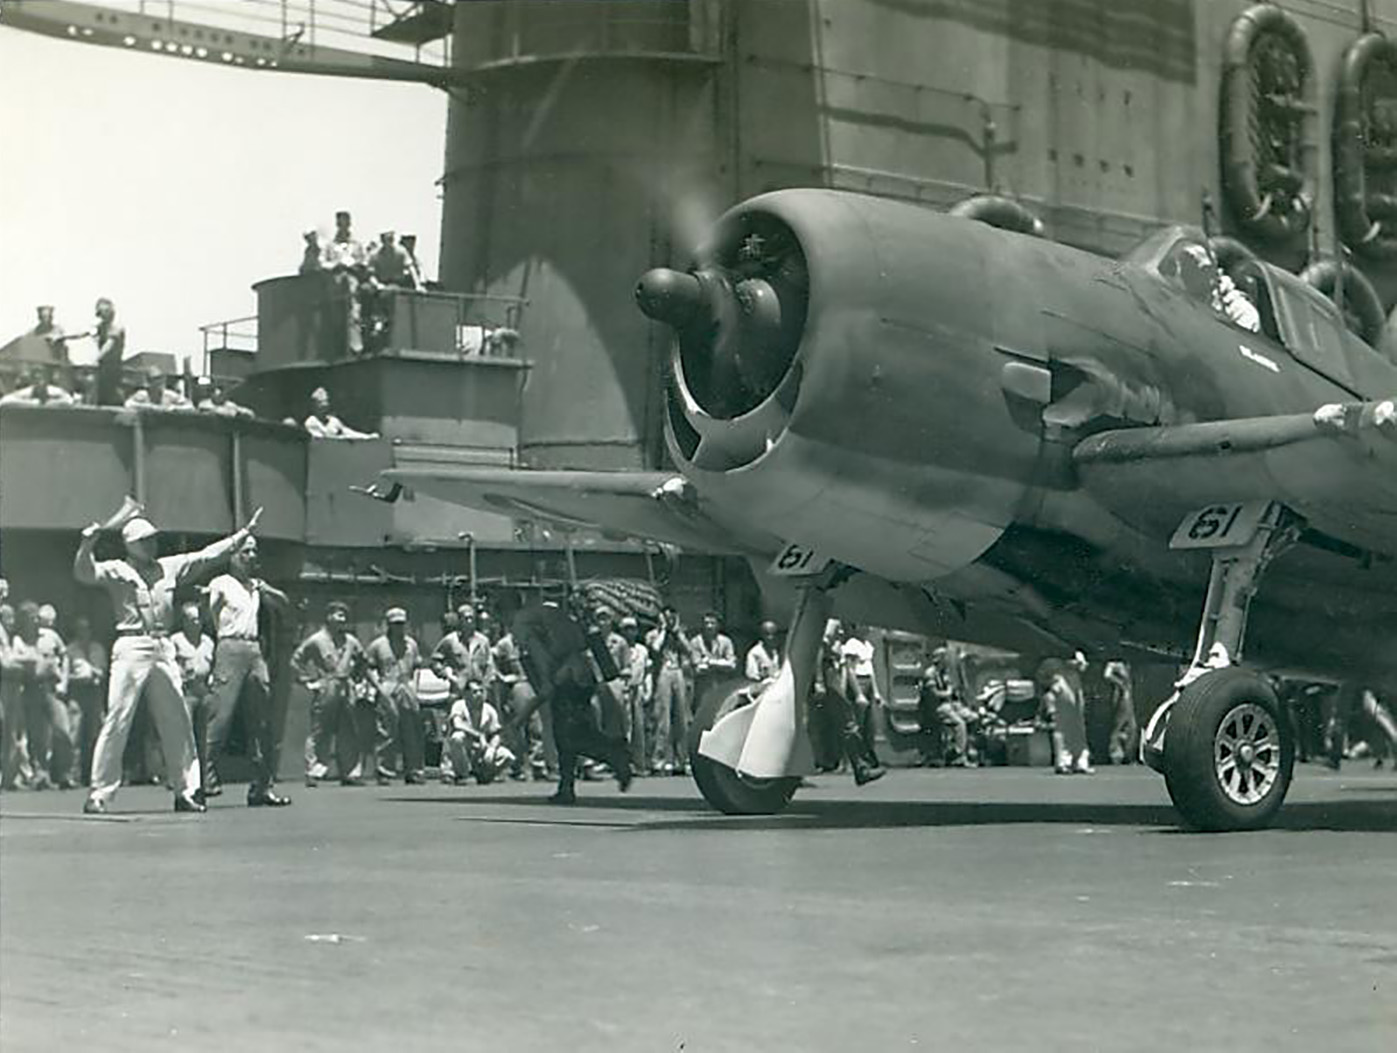 Grumman F6F 3 Hellcat VF 12 White 61 launches from CV 3 USS Saratoga 1943 44 01